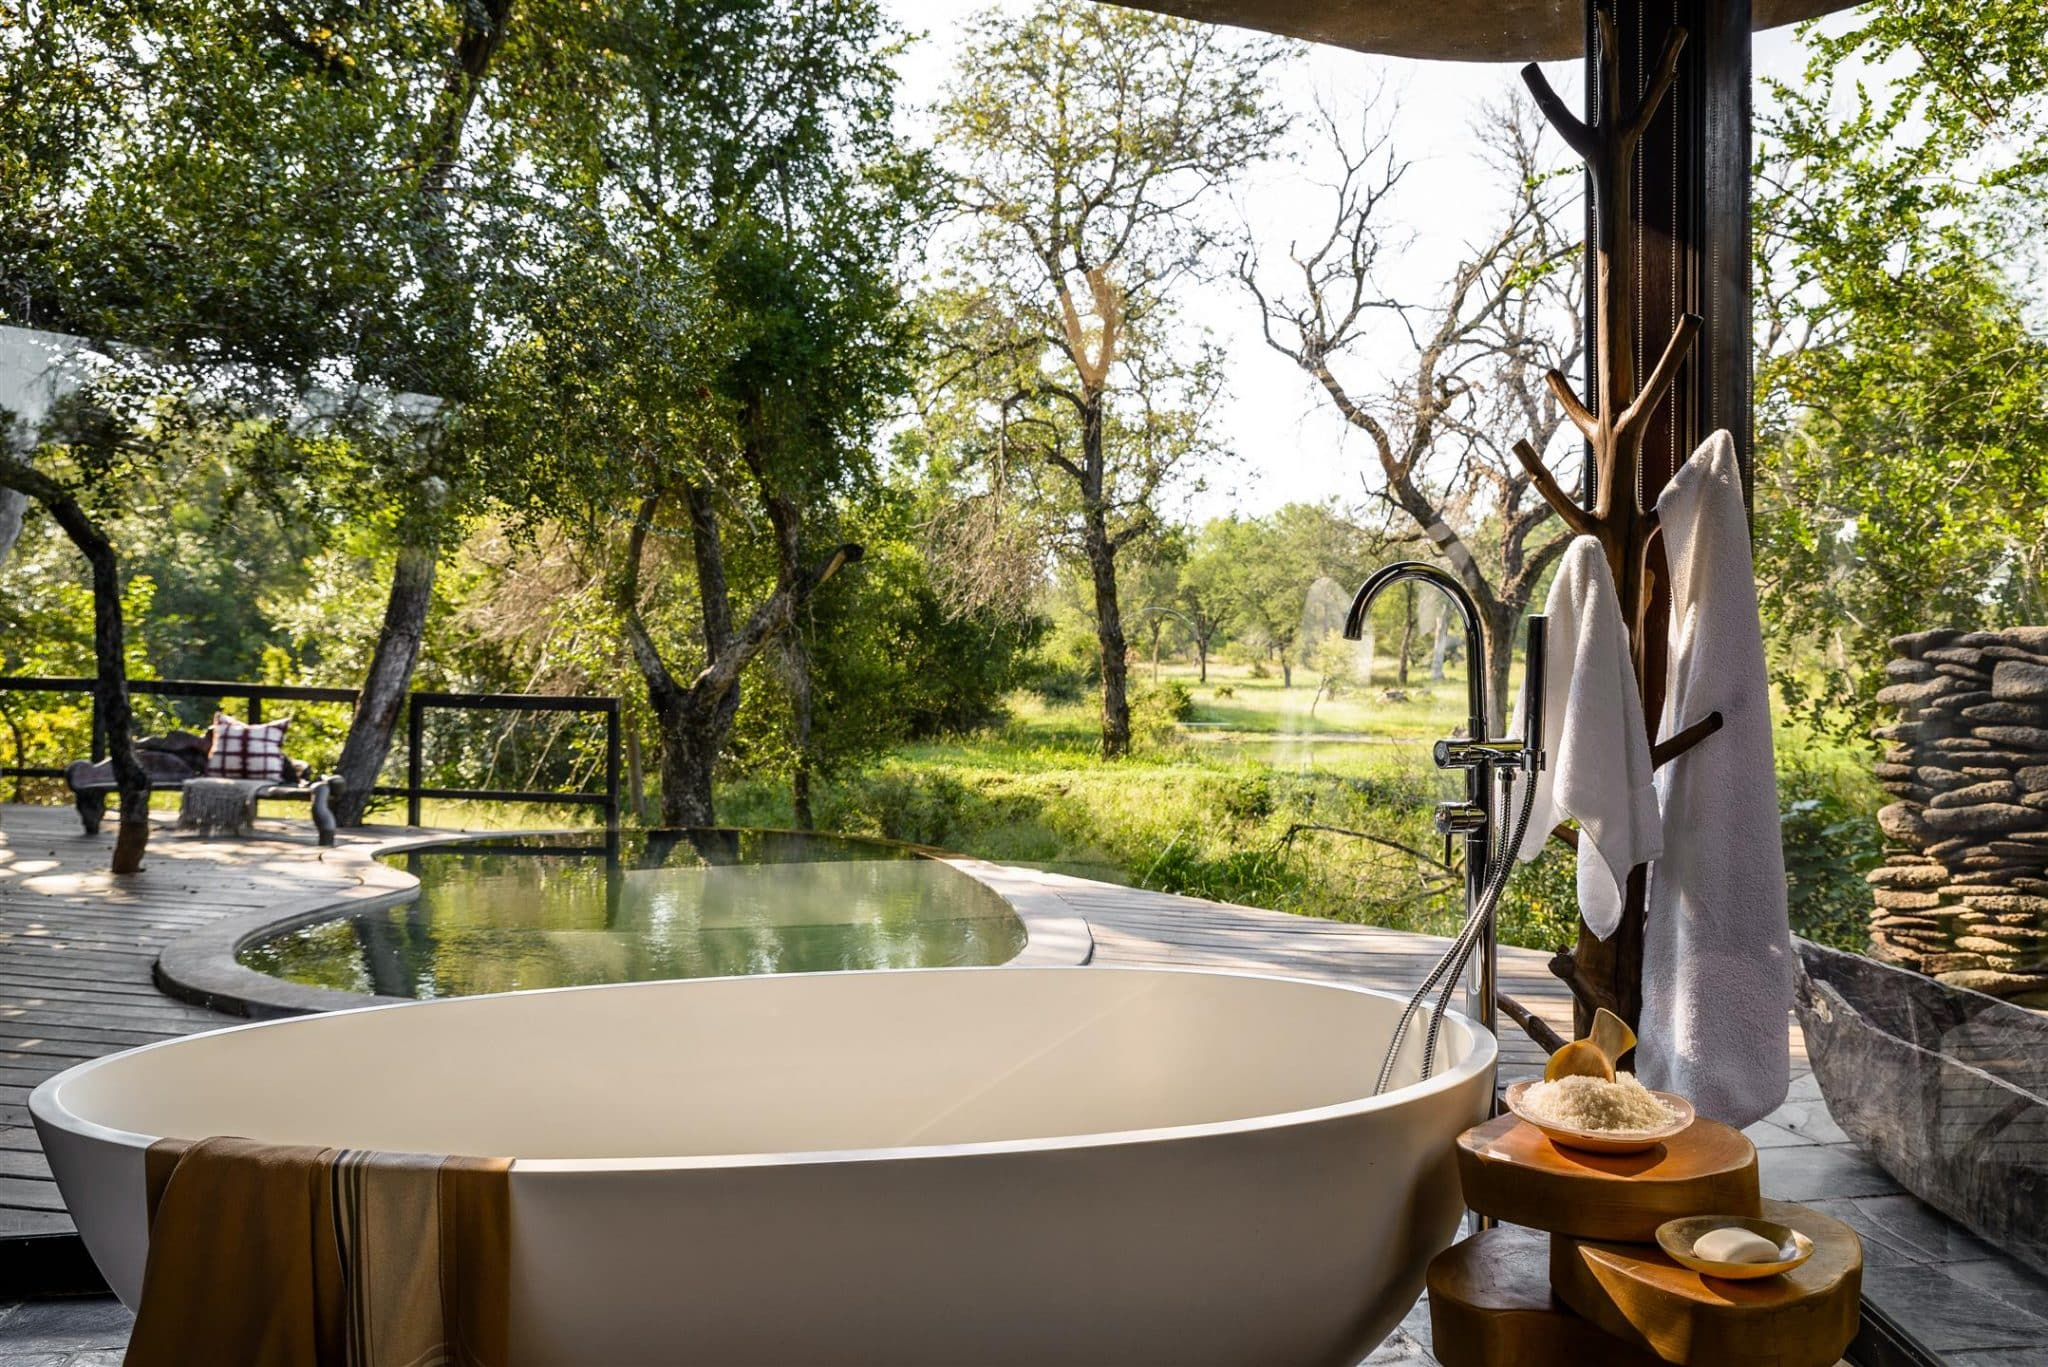 Singita Boulders bathroom and plunge pool